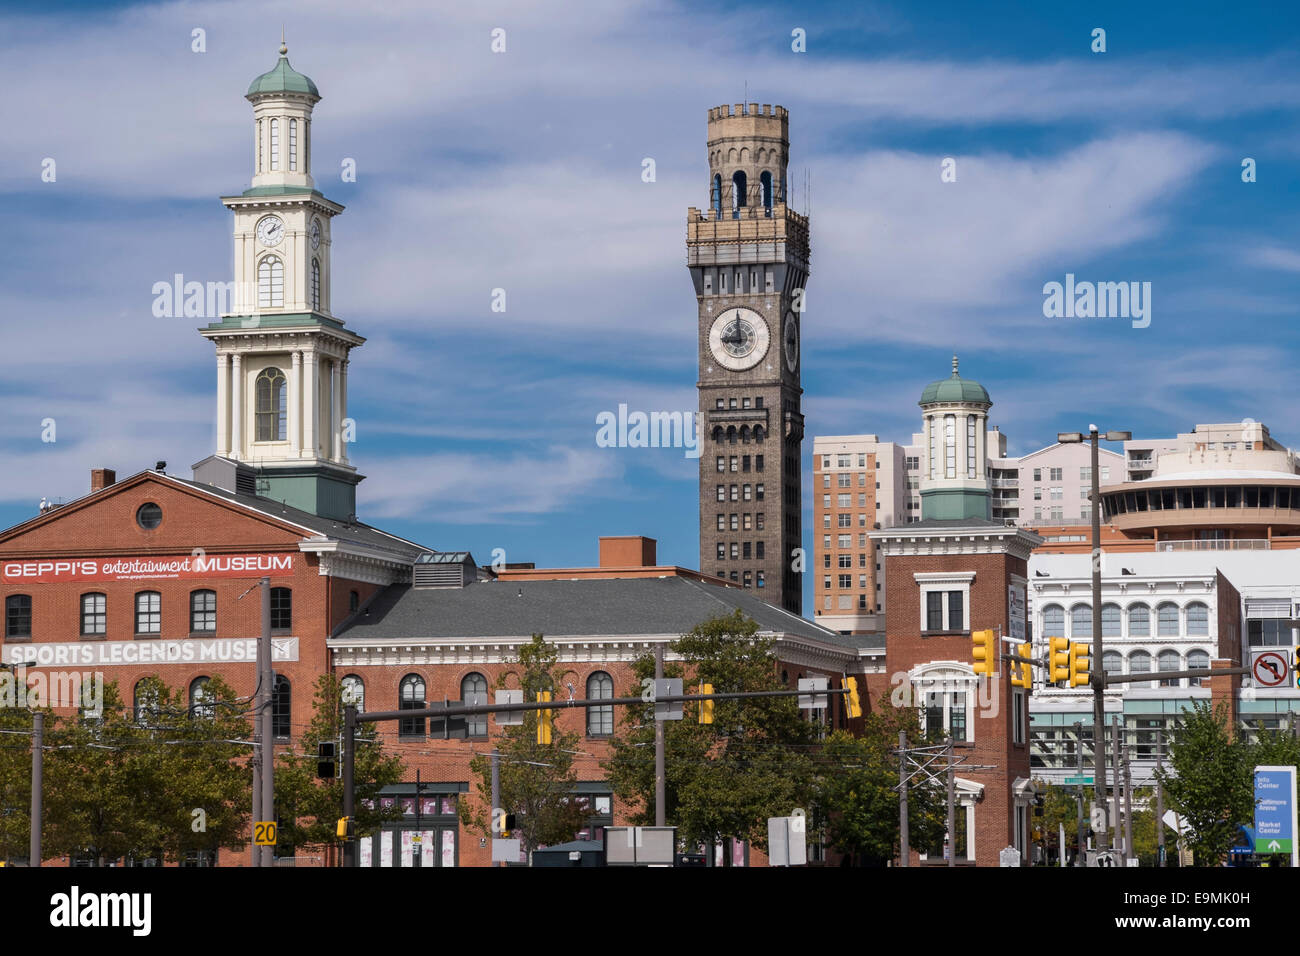 United States, Maryland, Baltimore, Emerson 'Bromo-Seltzer' Tower, Geppi's Entertainment Museum - Stock Image